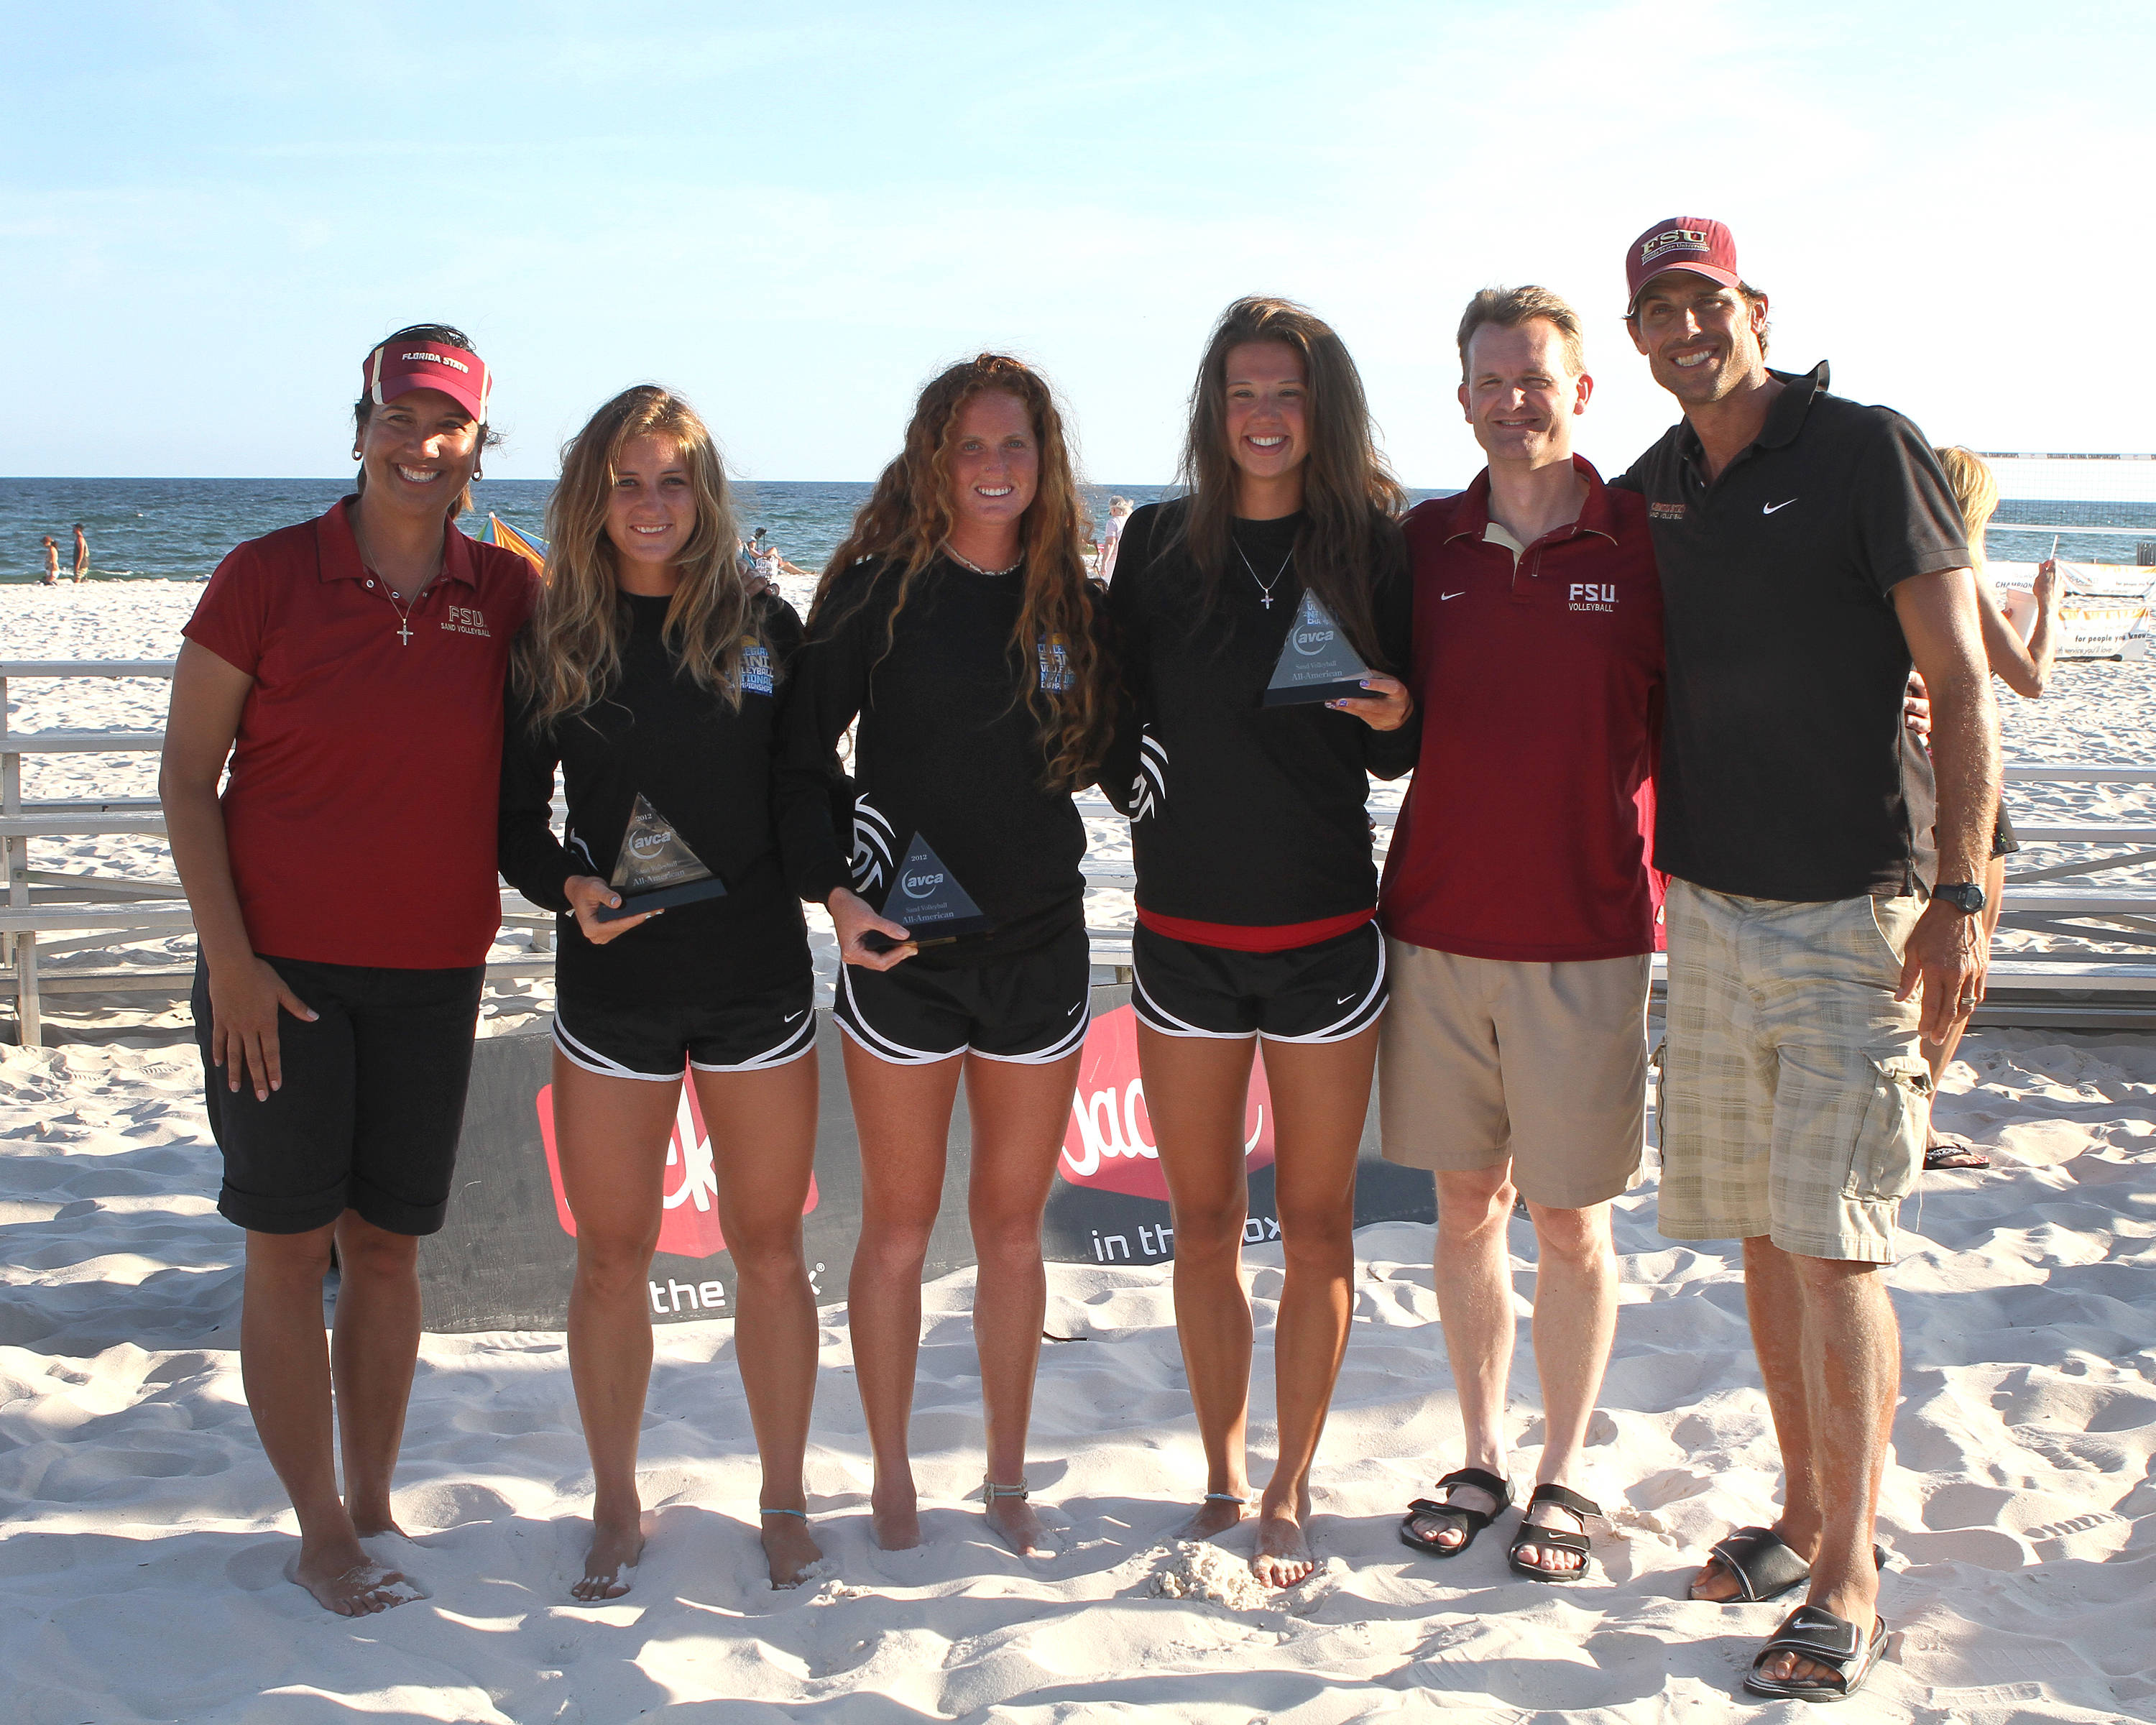 Head Coach Danalee Corso, All Americans Aurora Newgard, Brittan Tiegs, Jekaterina Stepanova, Director of Volleyball Chris Poole, Assistant Coach Brian Corso, SAND VOLLEYBALL COLLEGIATE CHAMPIONSHIPS,  04/28/2012